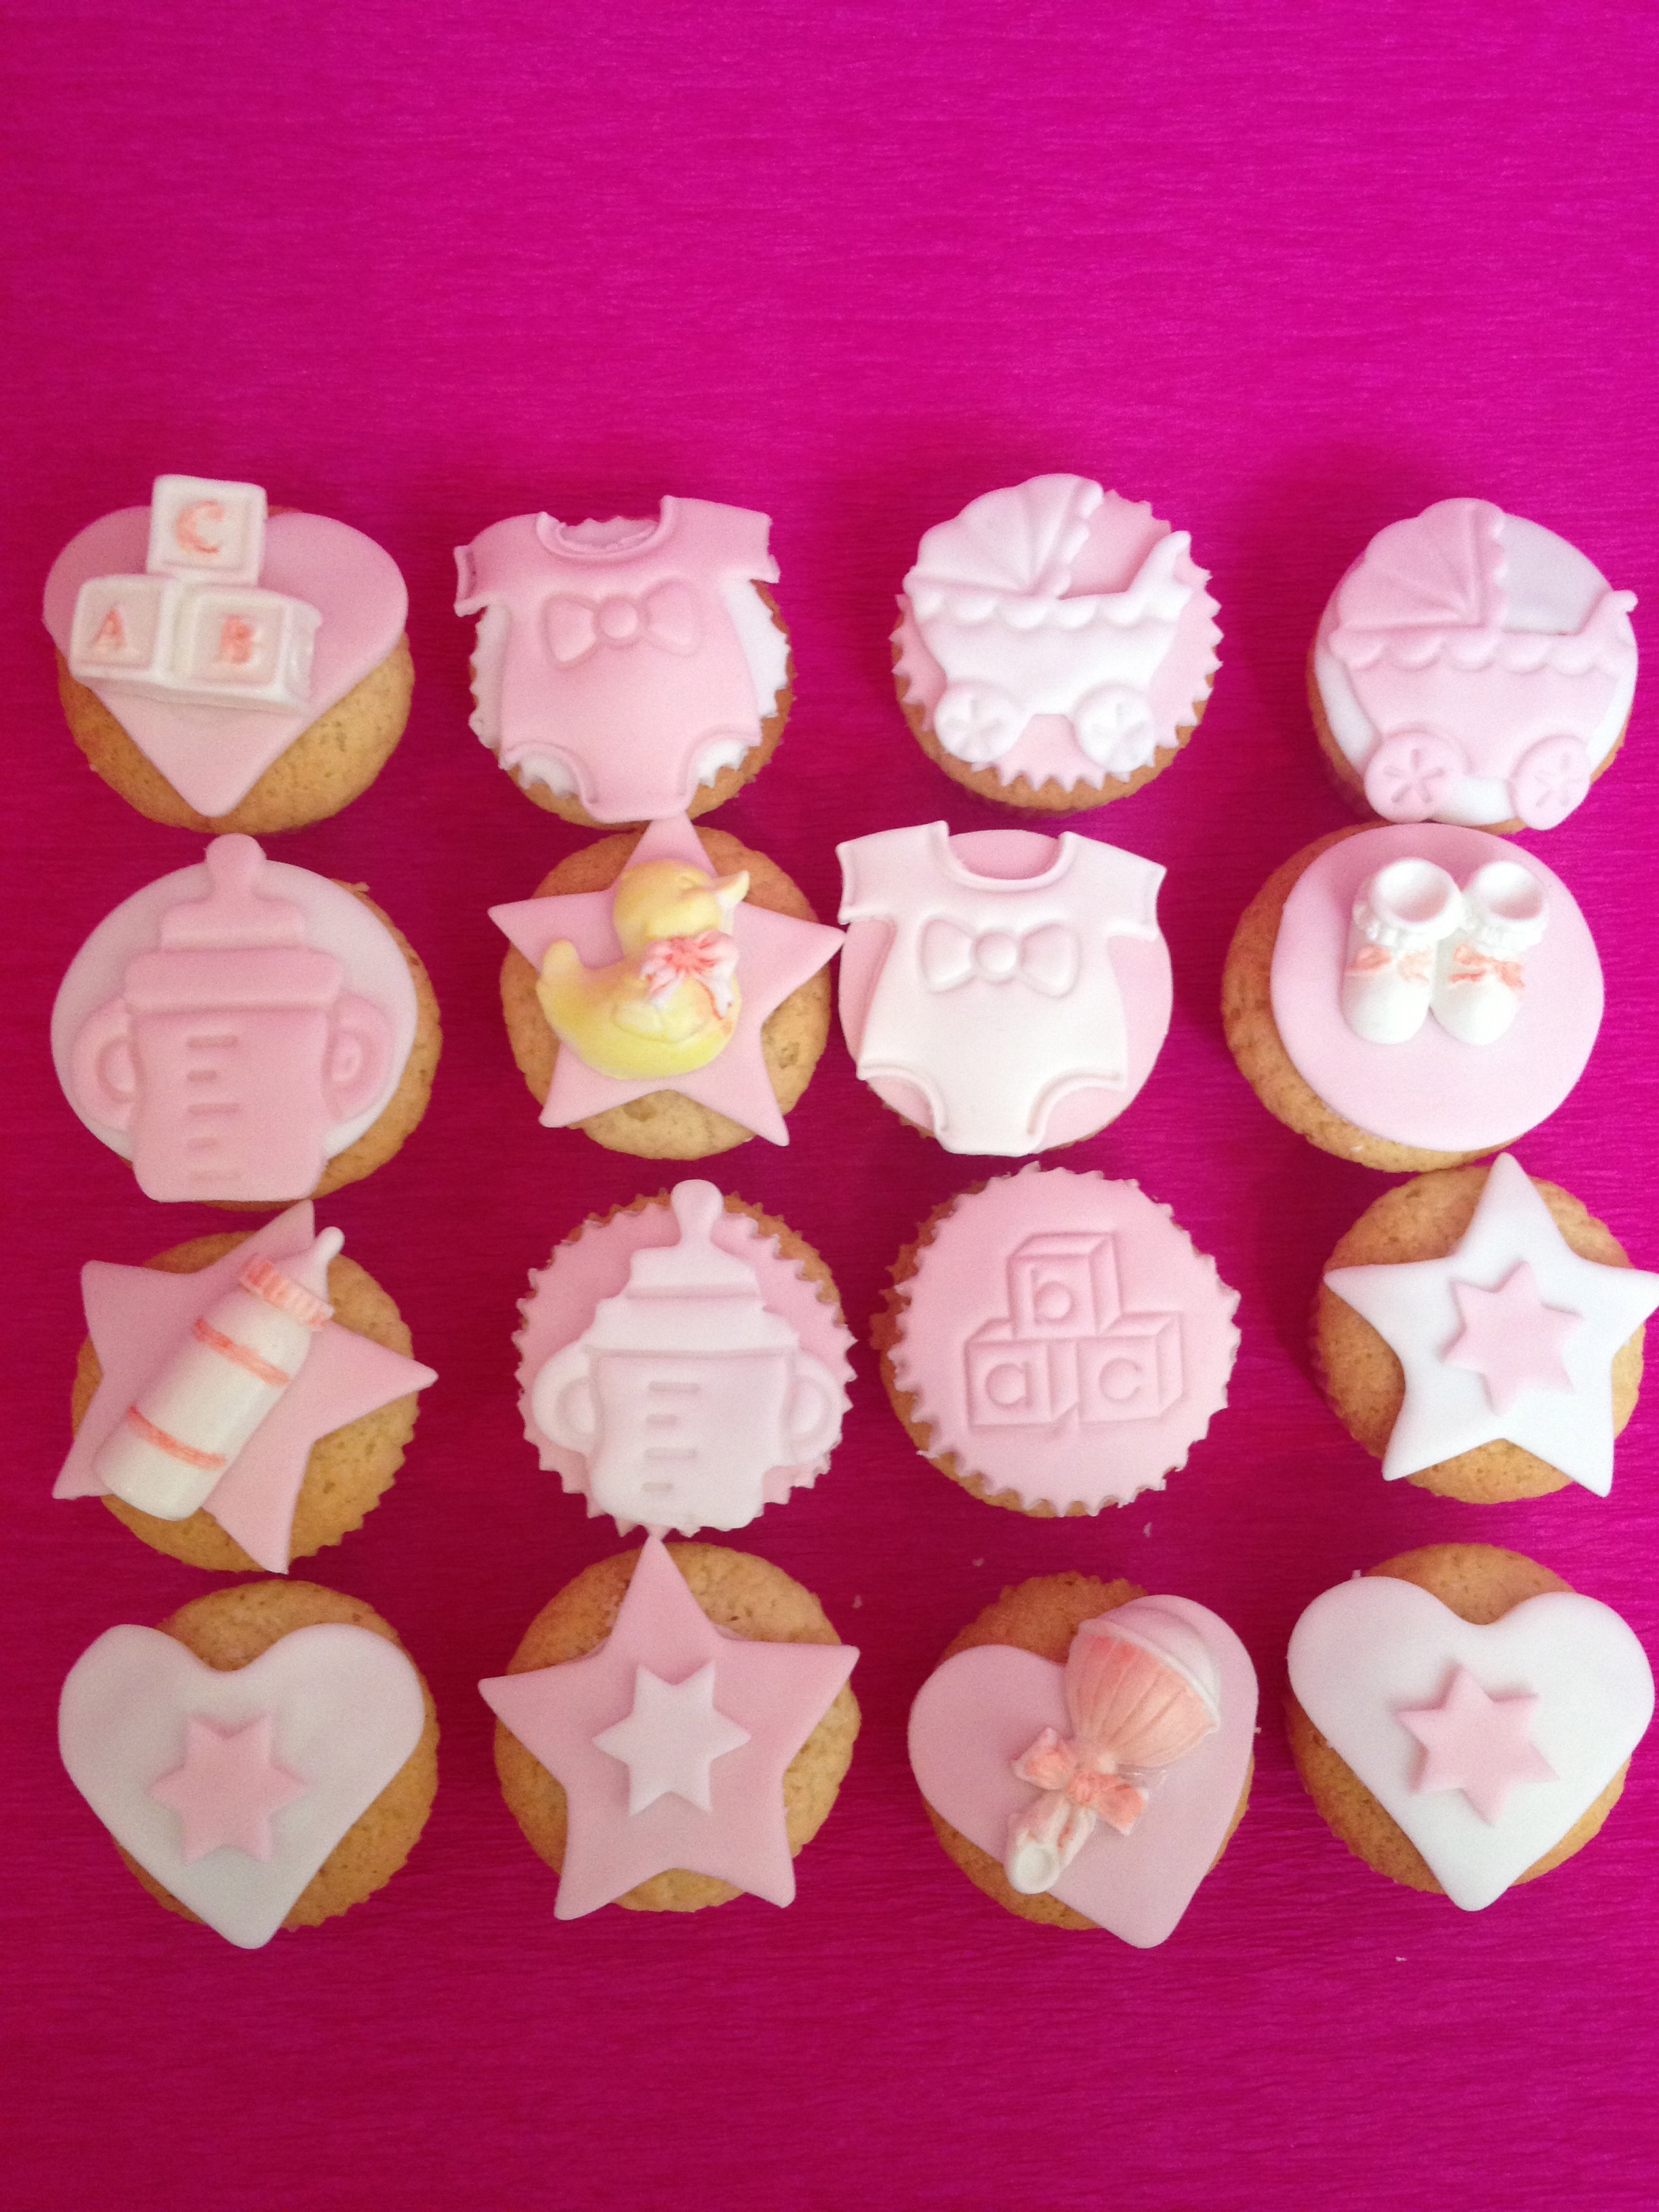 Baby Shower Fille Lolit Cupcakes